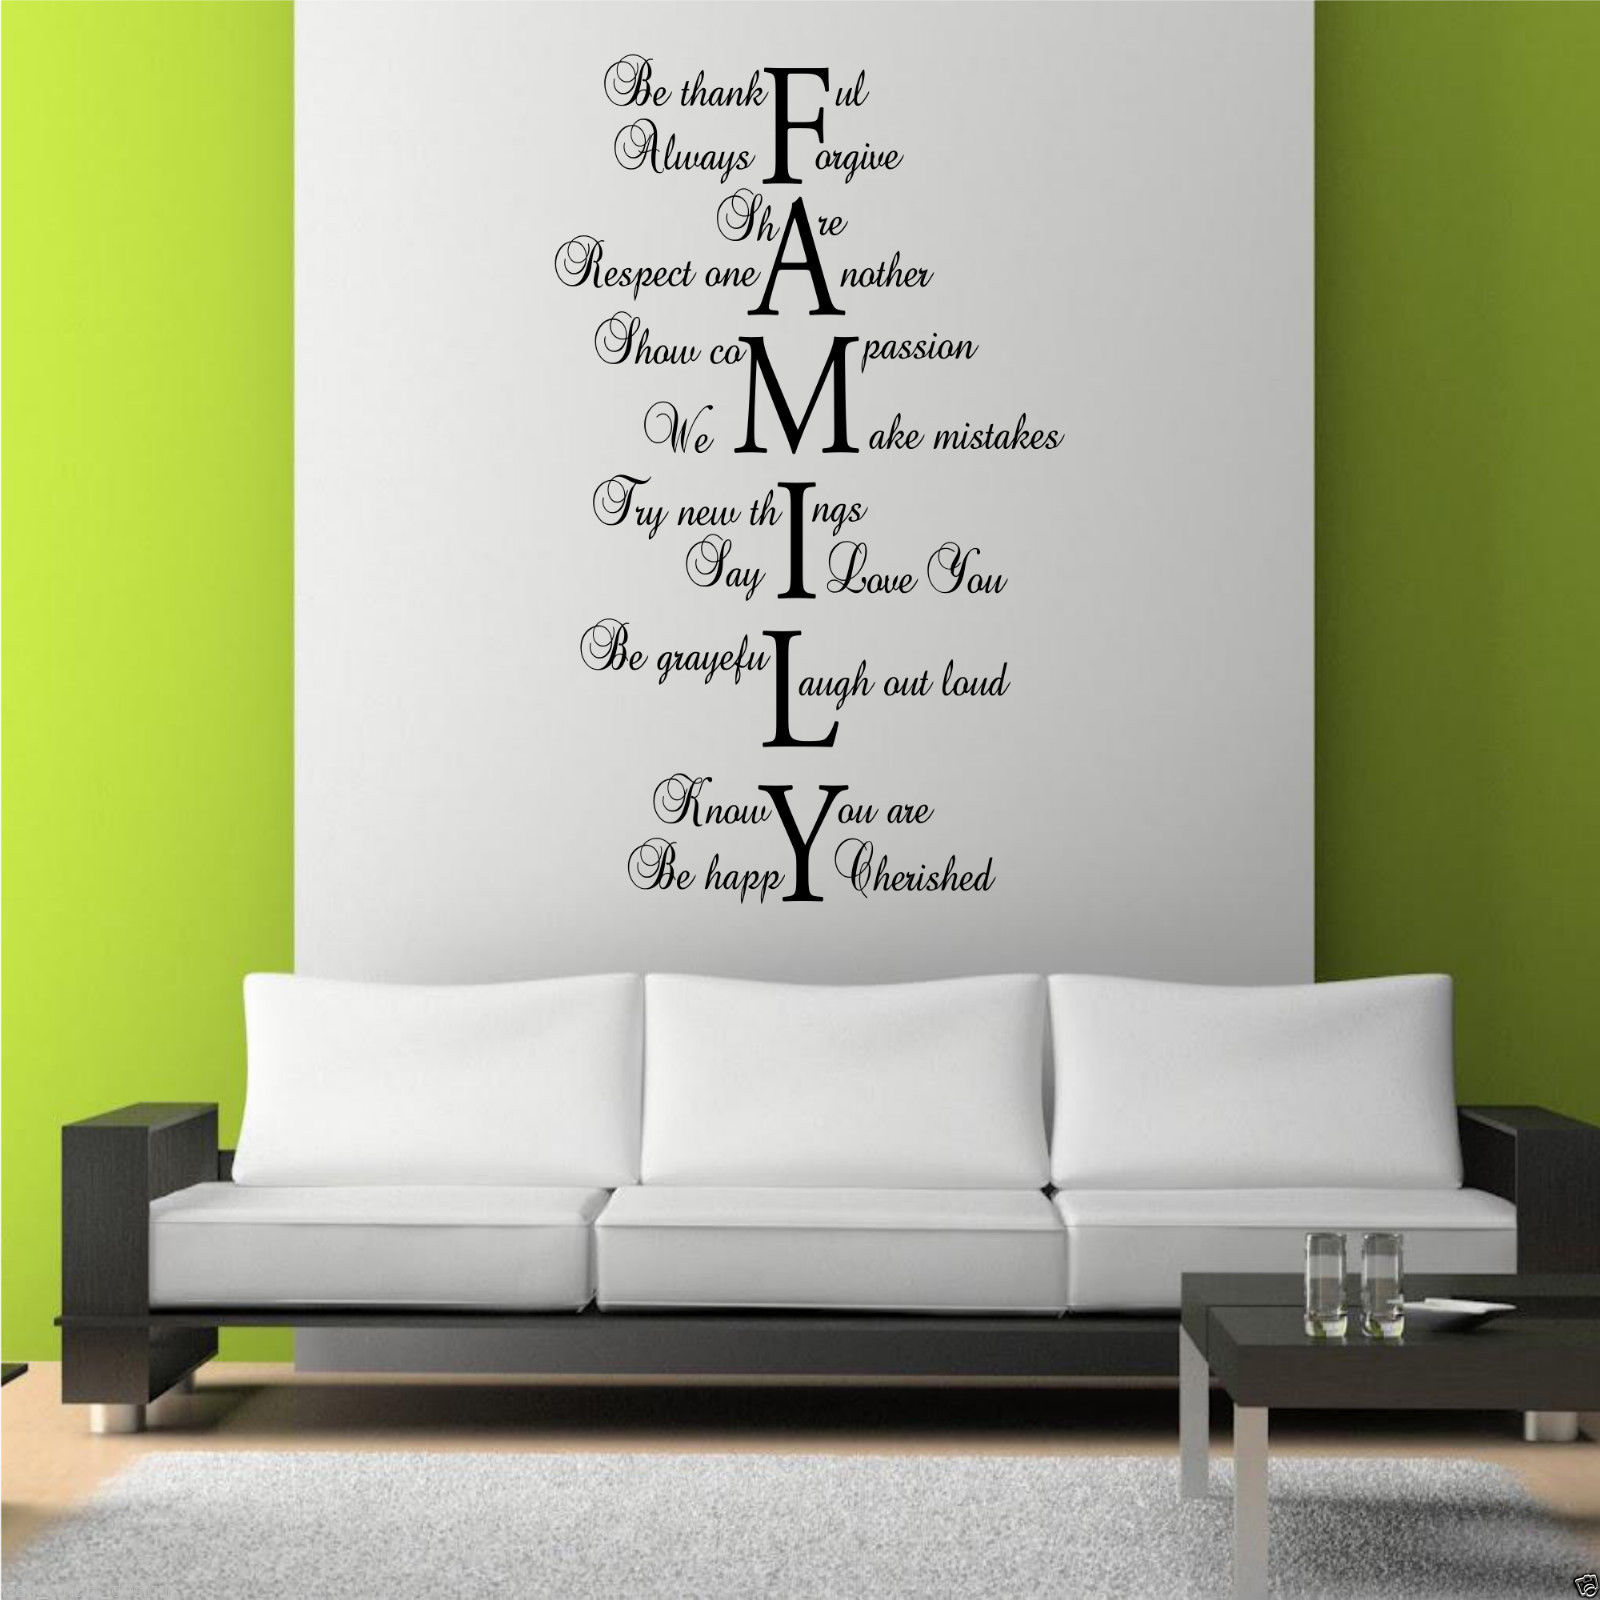 Wall Art Murals Decals Stickers Family Love Life Wall Art Sticker Quote Room Decal Mural